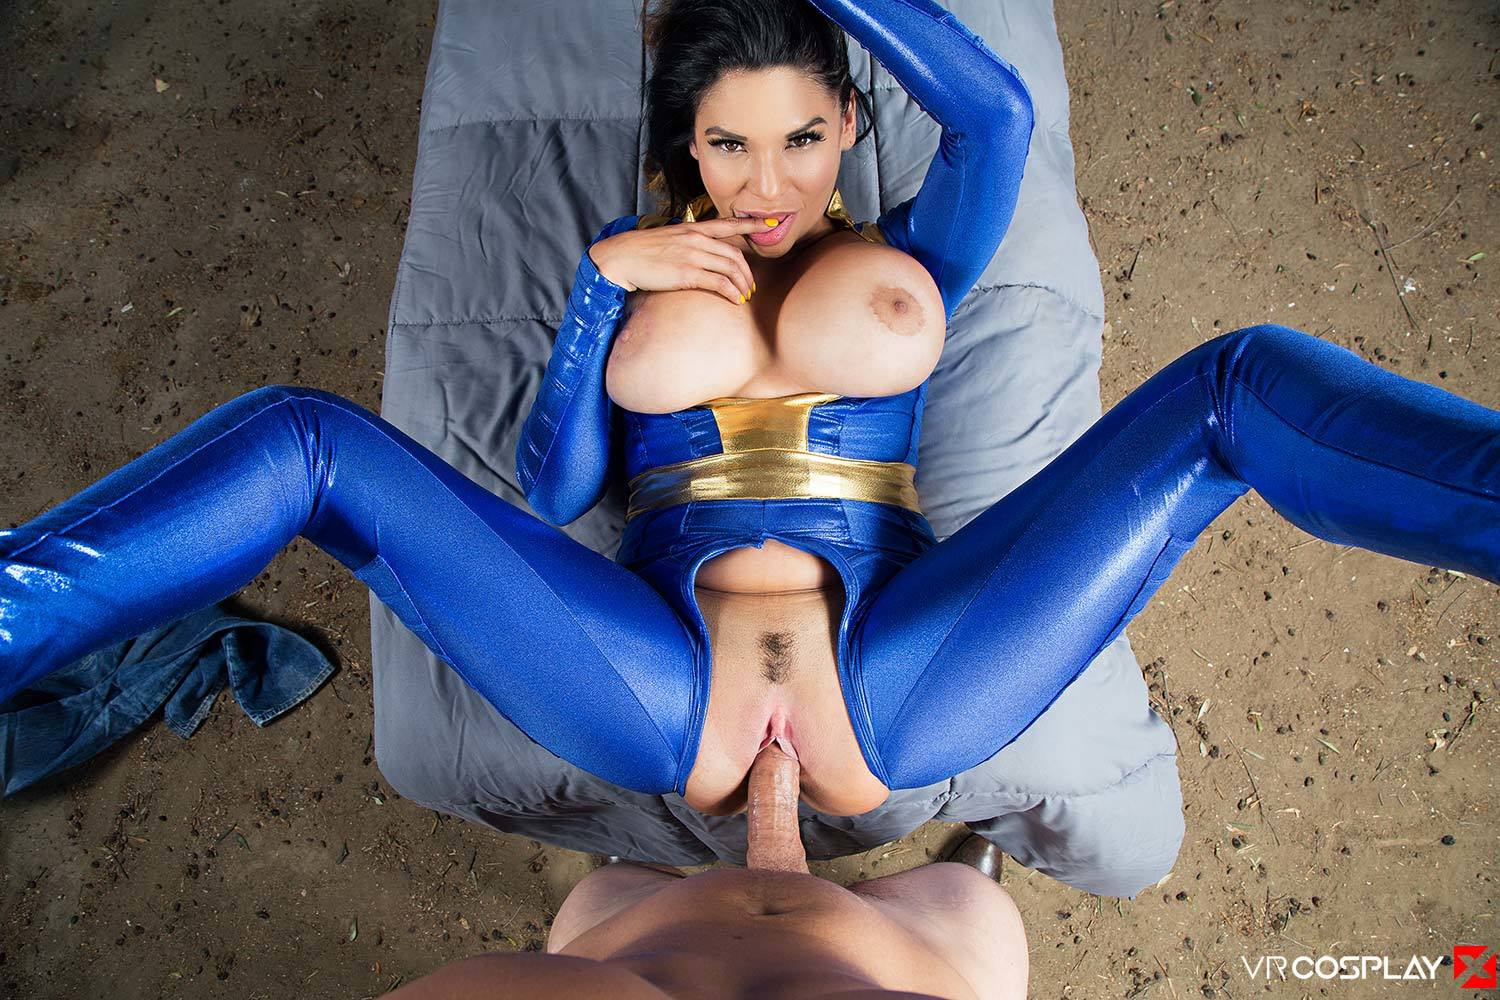 Vrcosplayx missy martinez fucks you in fallout xxx parody 5